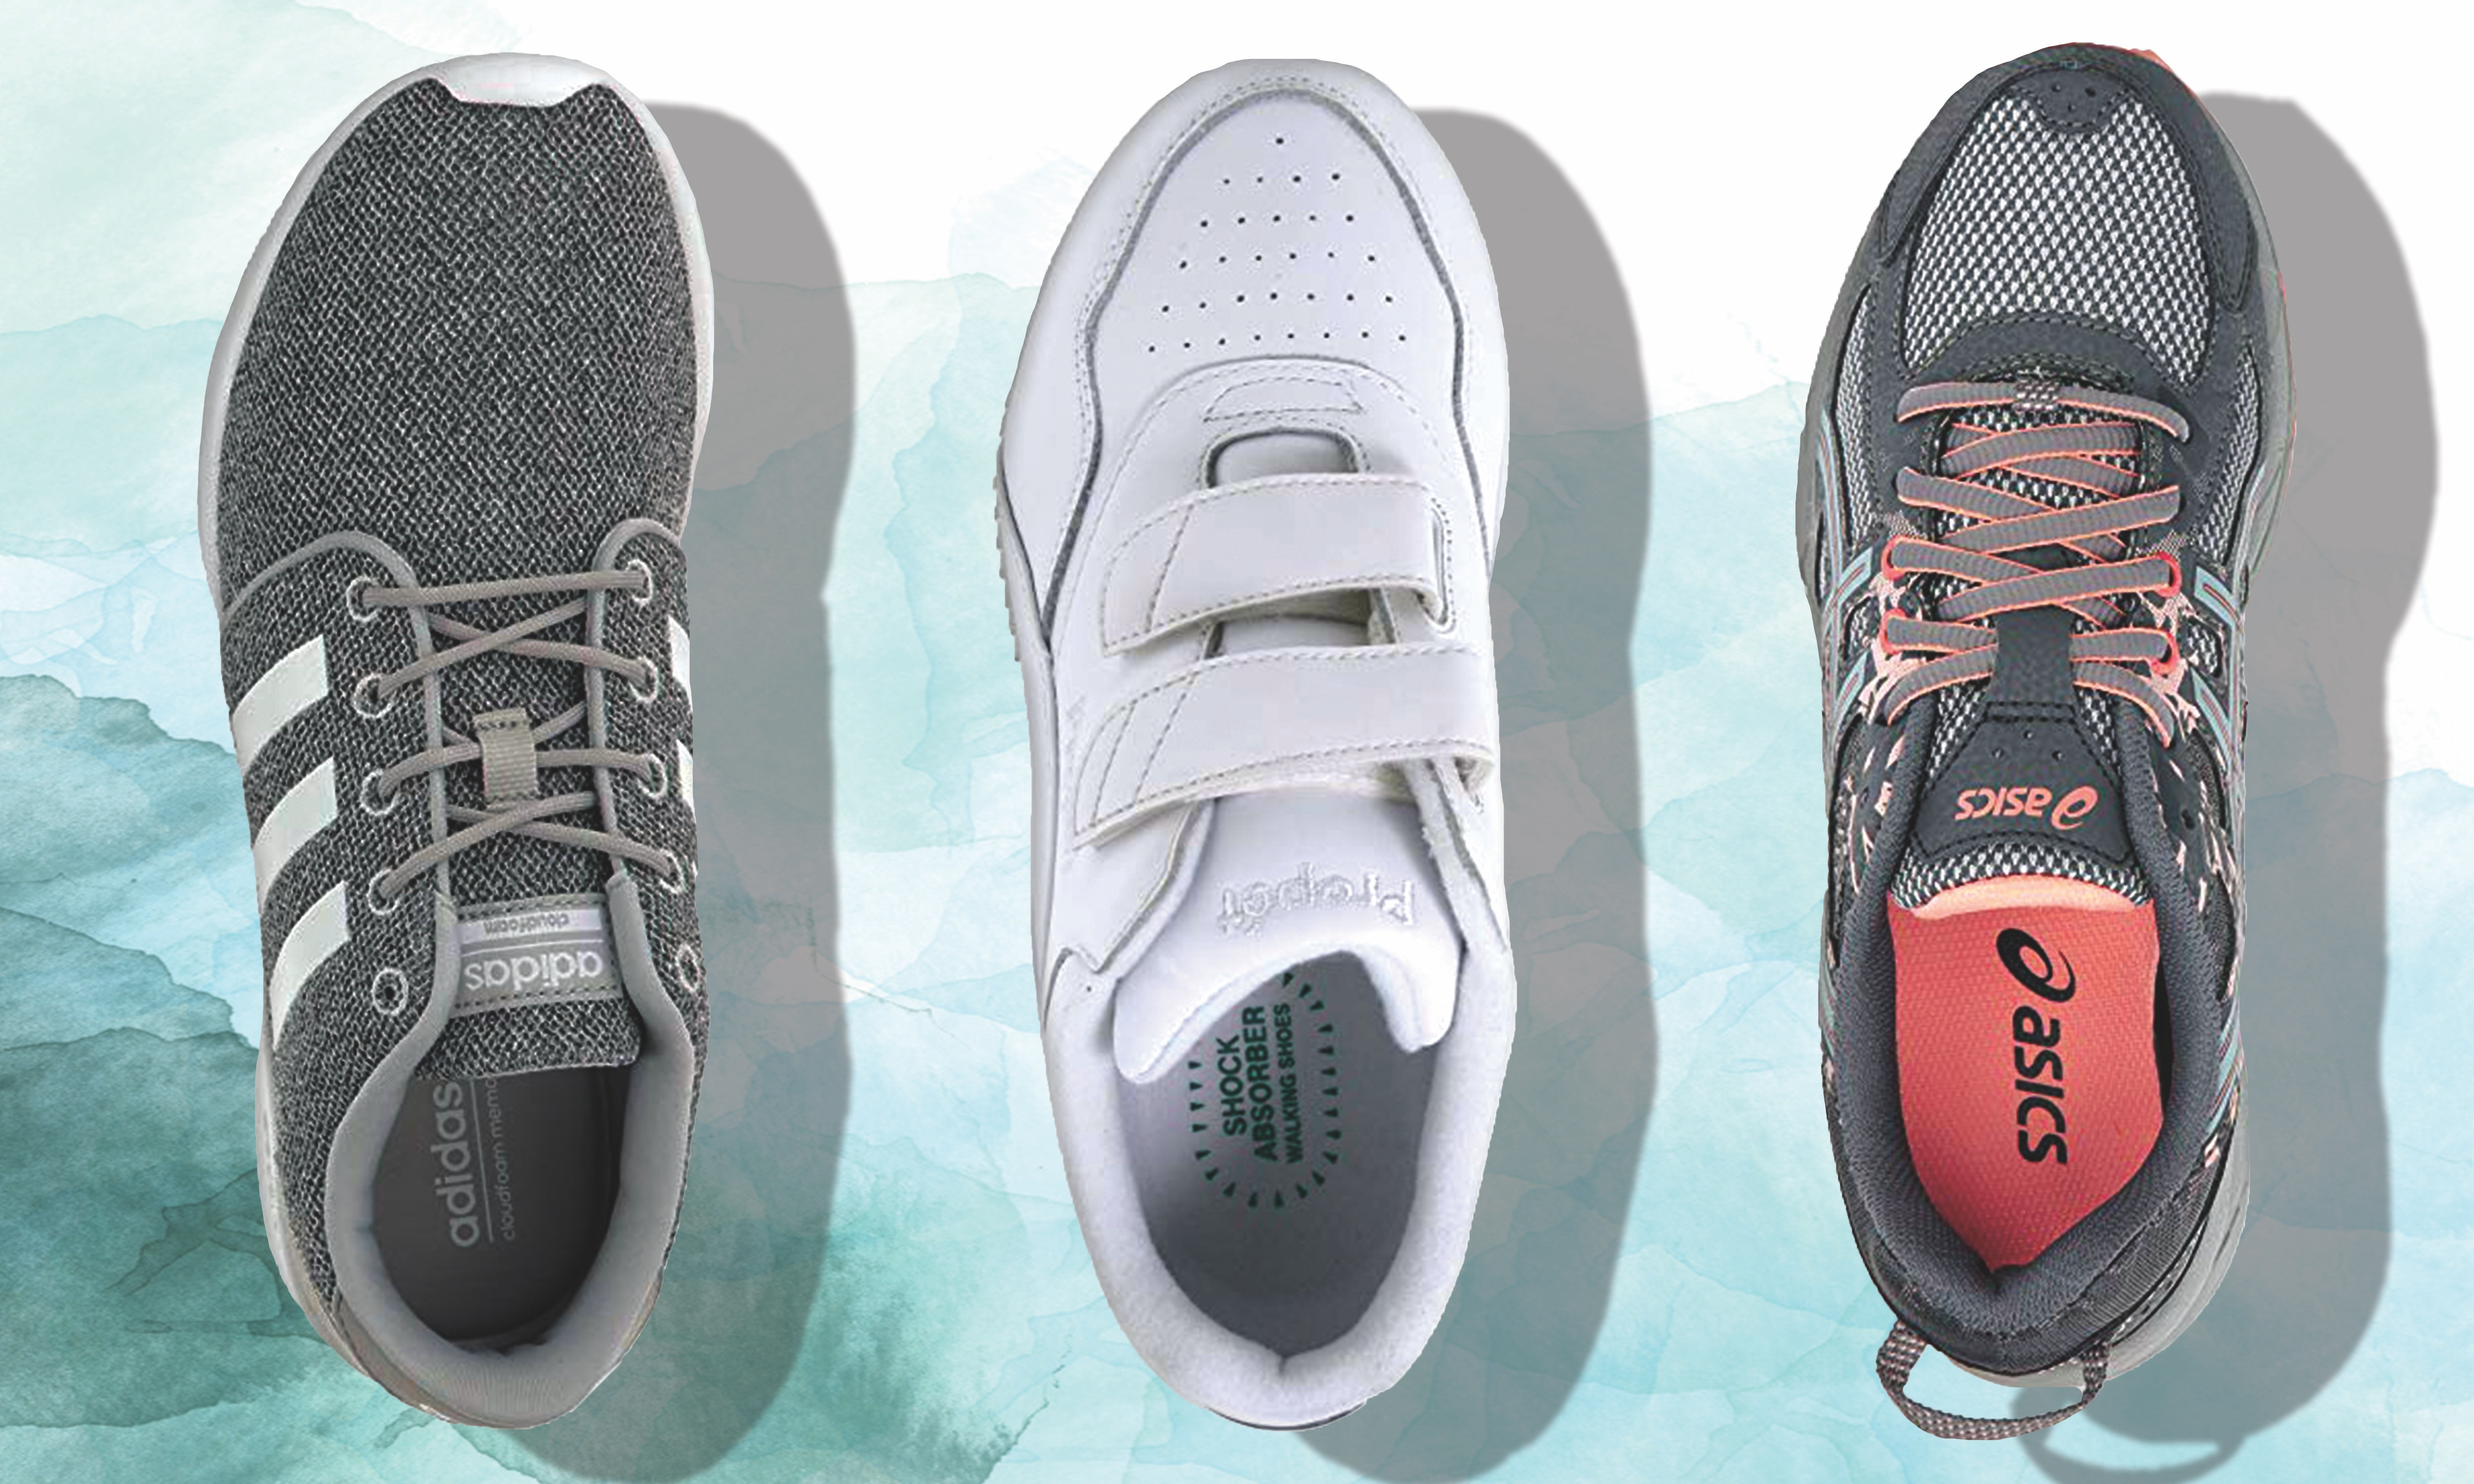 These sneakers from Skechers are the easiest (and comfiest